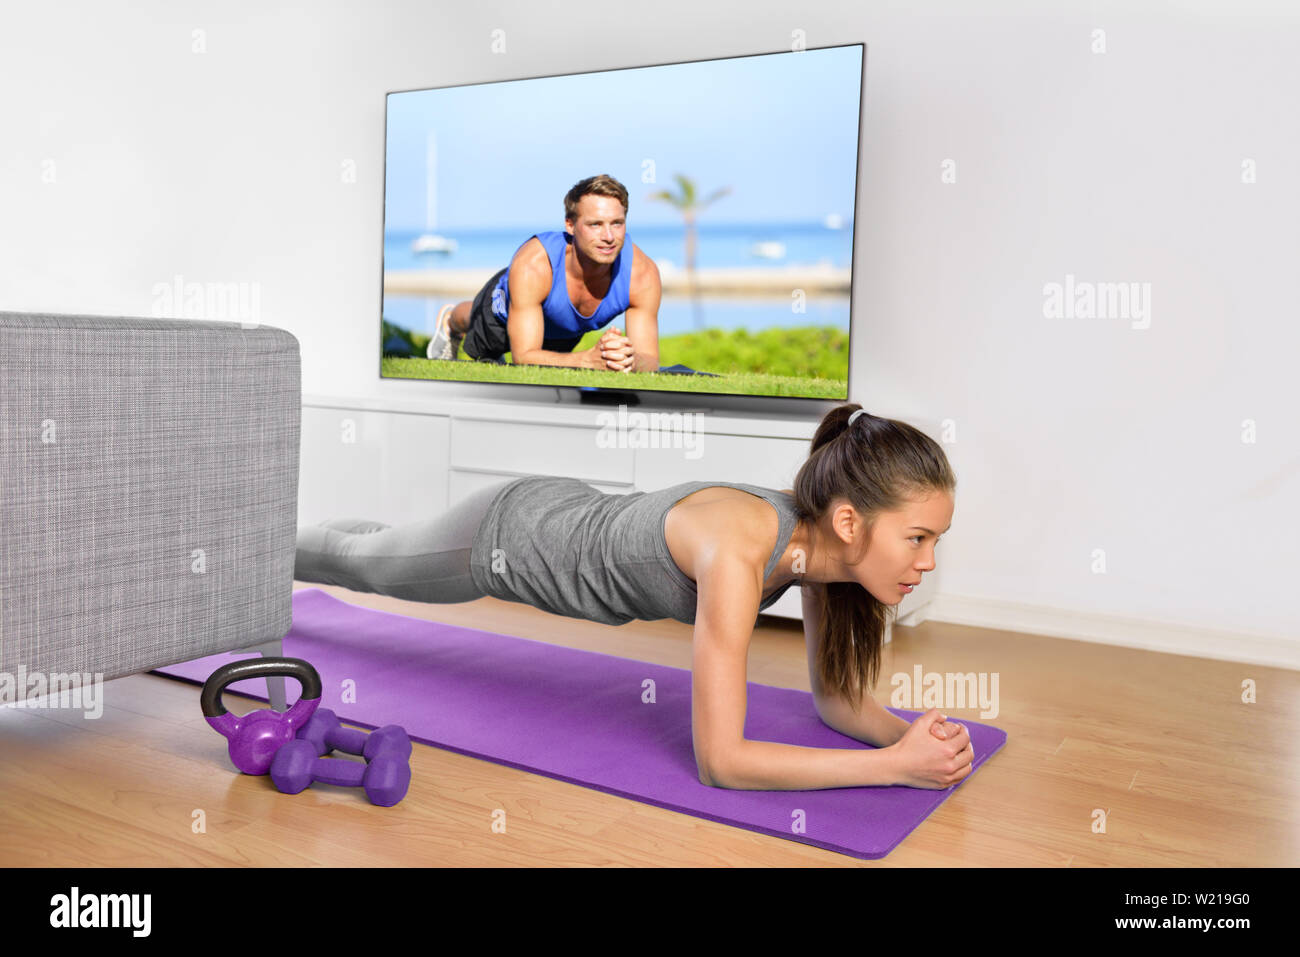 Living room fitness workout - girl doing plank exercises to exercise core at home. Young Asian woman training muscles in front of the TV as part of a healthy lifestyle without going to the gym. - Stock Image